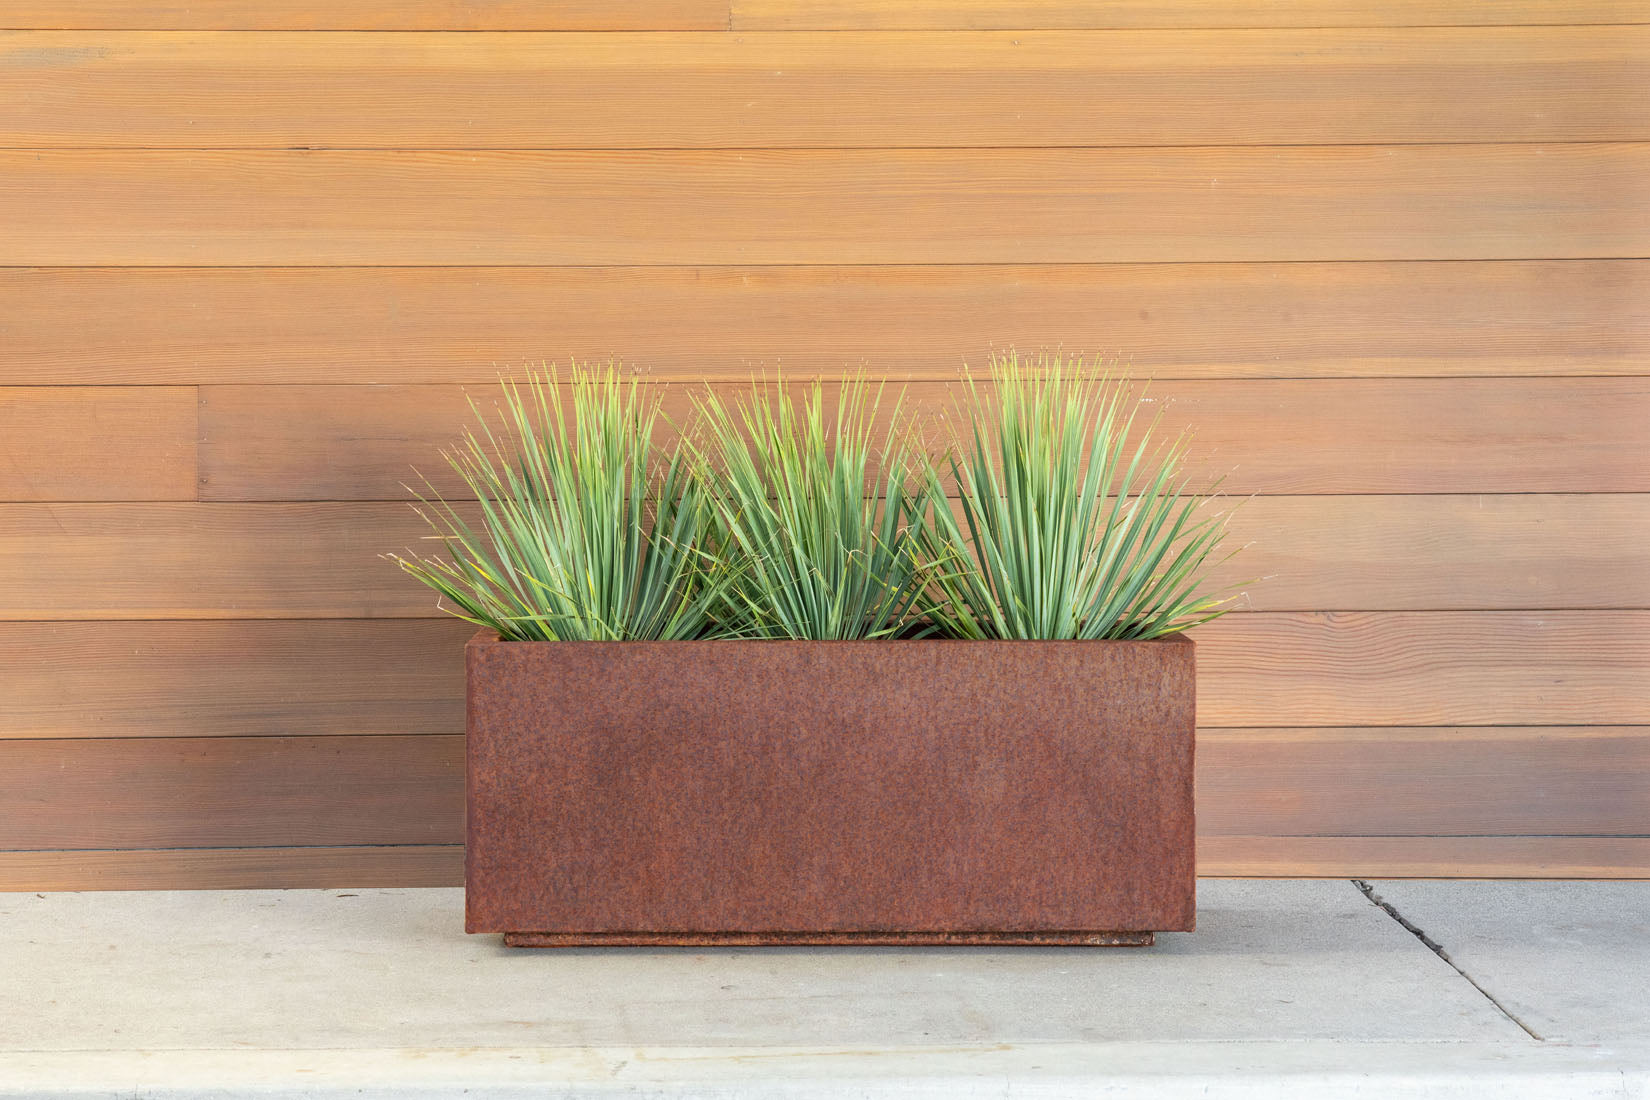 Corten Steel Long Box Planter